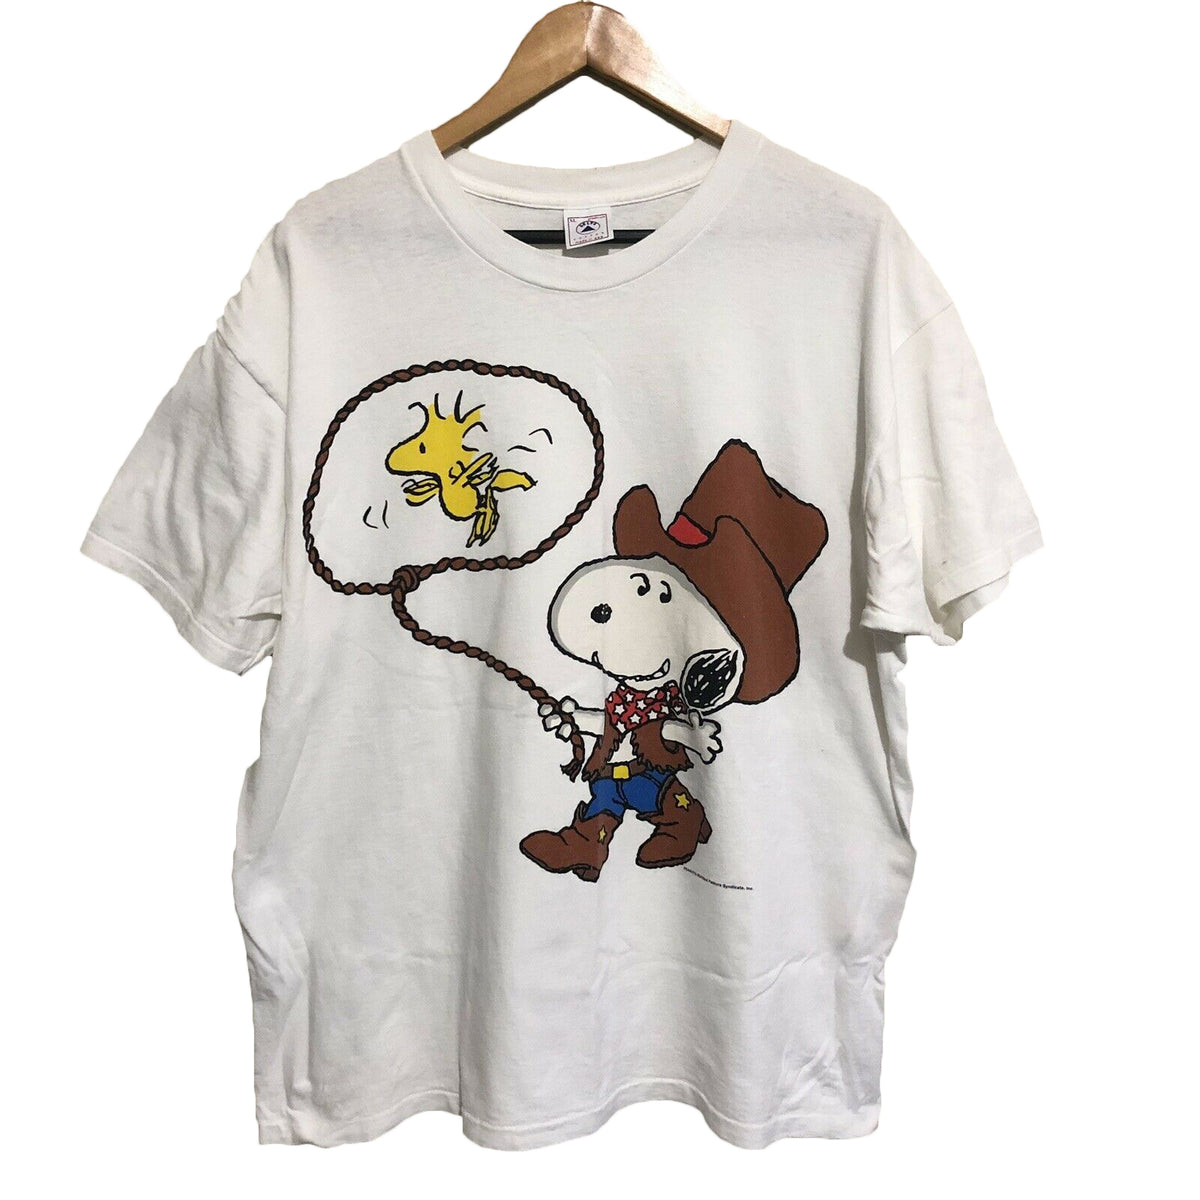 Snoopy Woodstock Cowboy Looney Tunes T-Shirt Mens XL